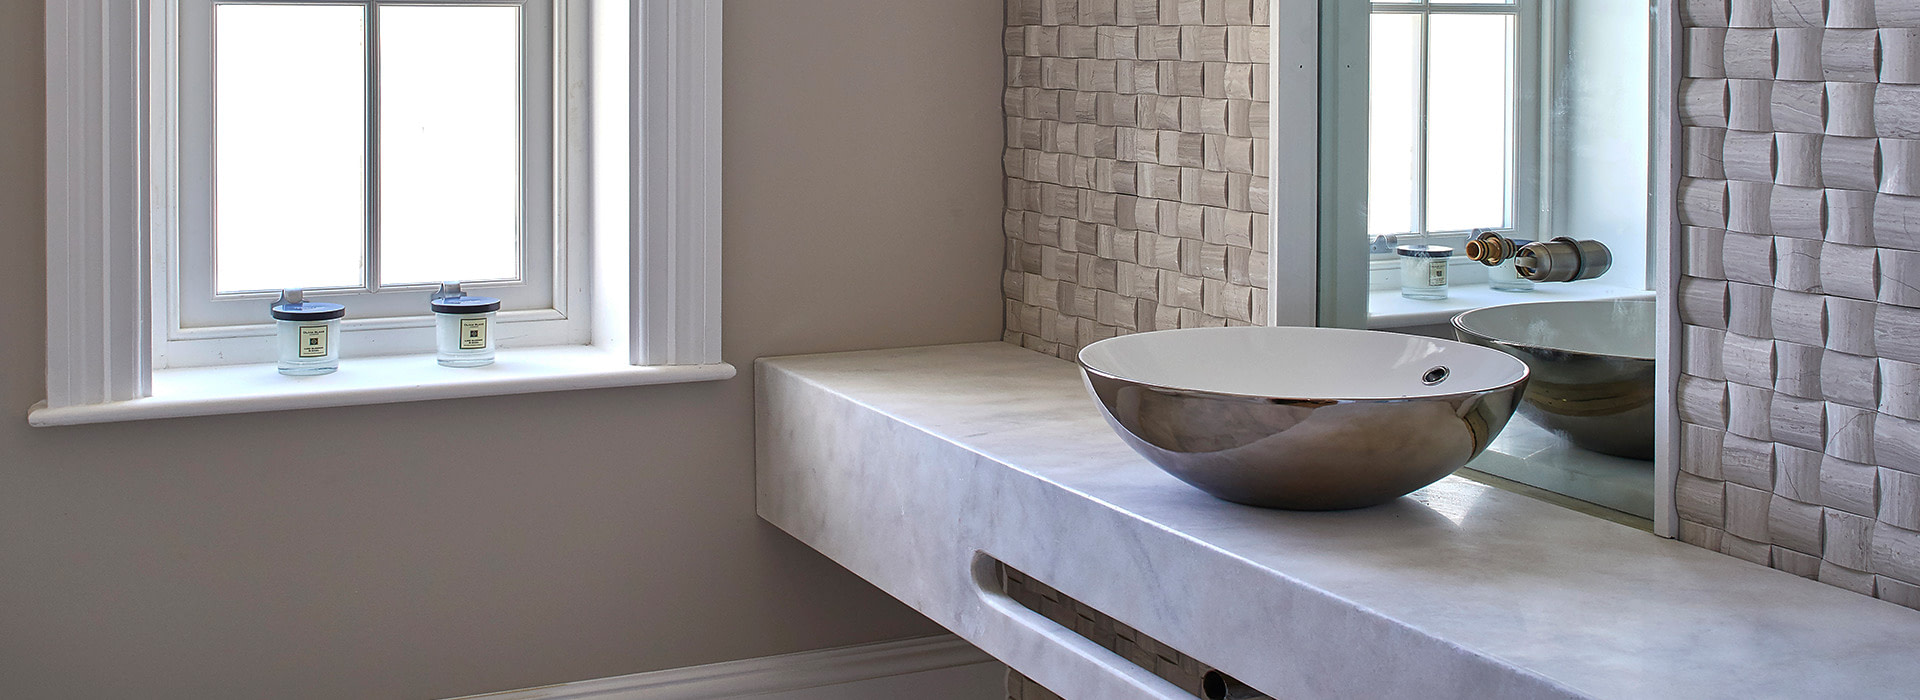 Marble vanity with textured bathroom wall tiles